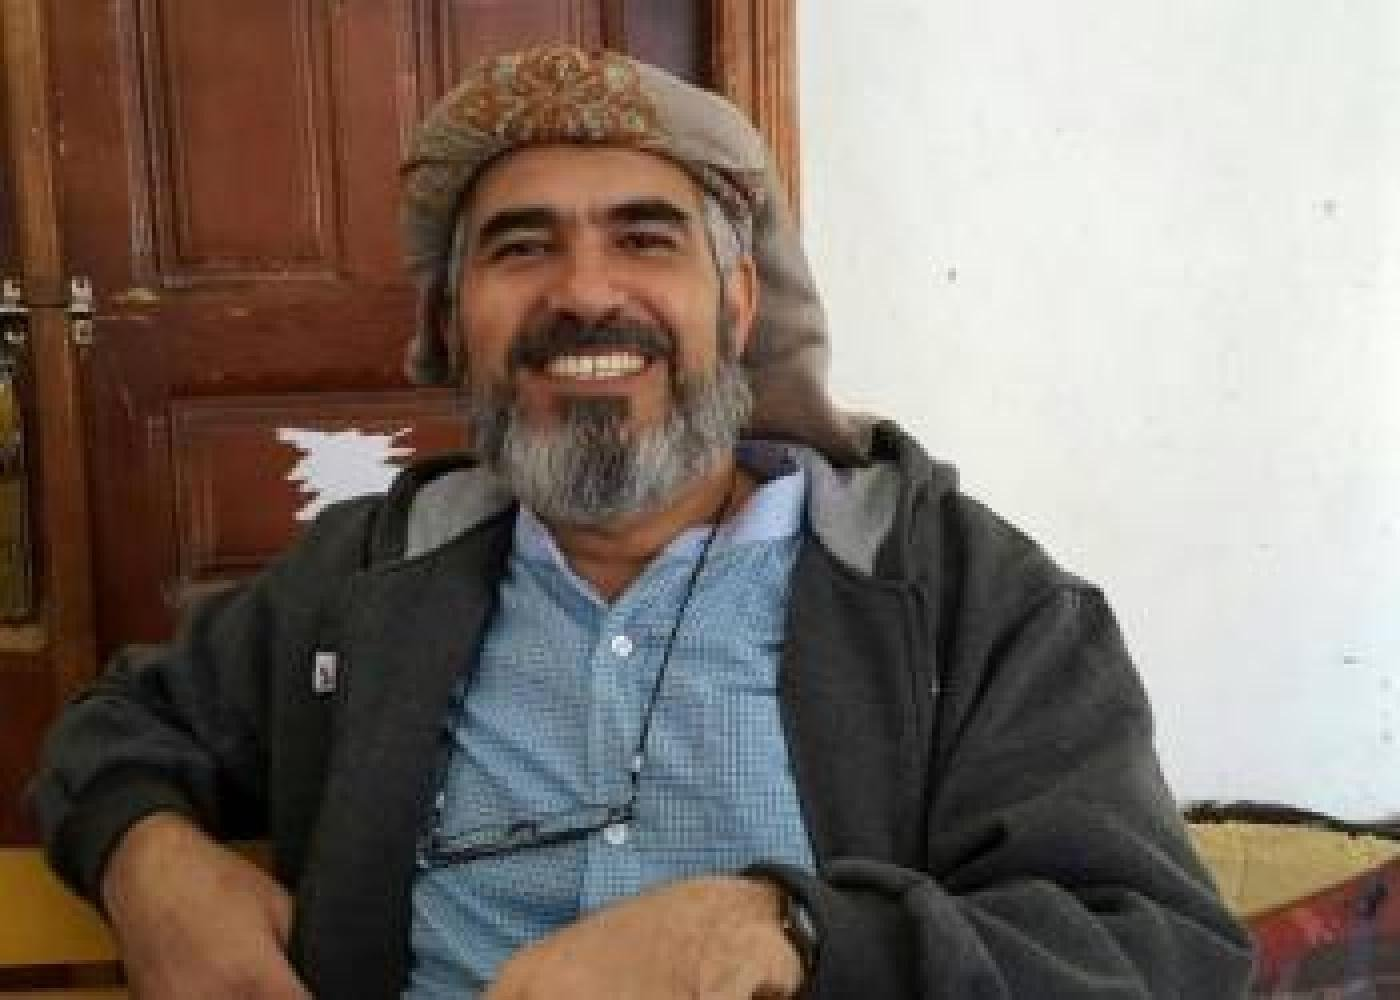 Hamed bin Haydara, now released, was arrested in 2013 and sentenced to death by a Houthi court after being charged with apostasy and spying for Israel (Bahai International Community)